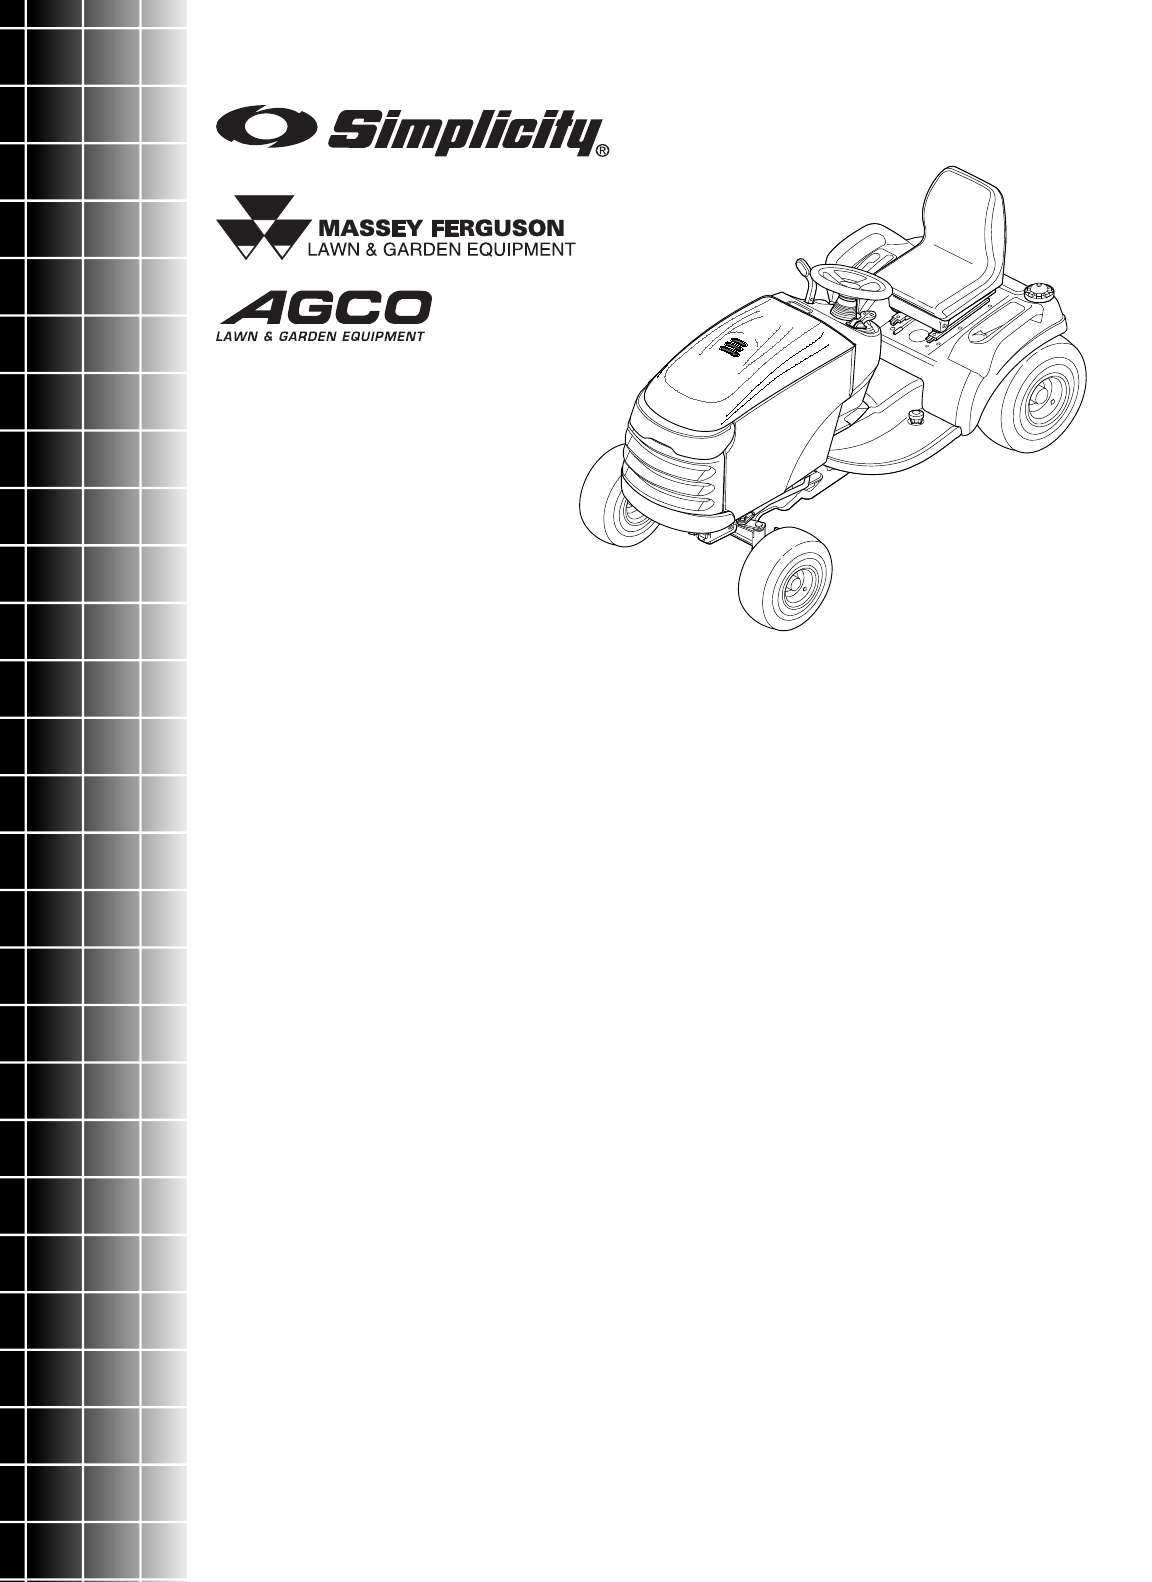 Simplicity Lawn Mower 1800 Series User Guide